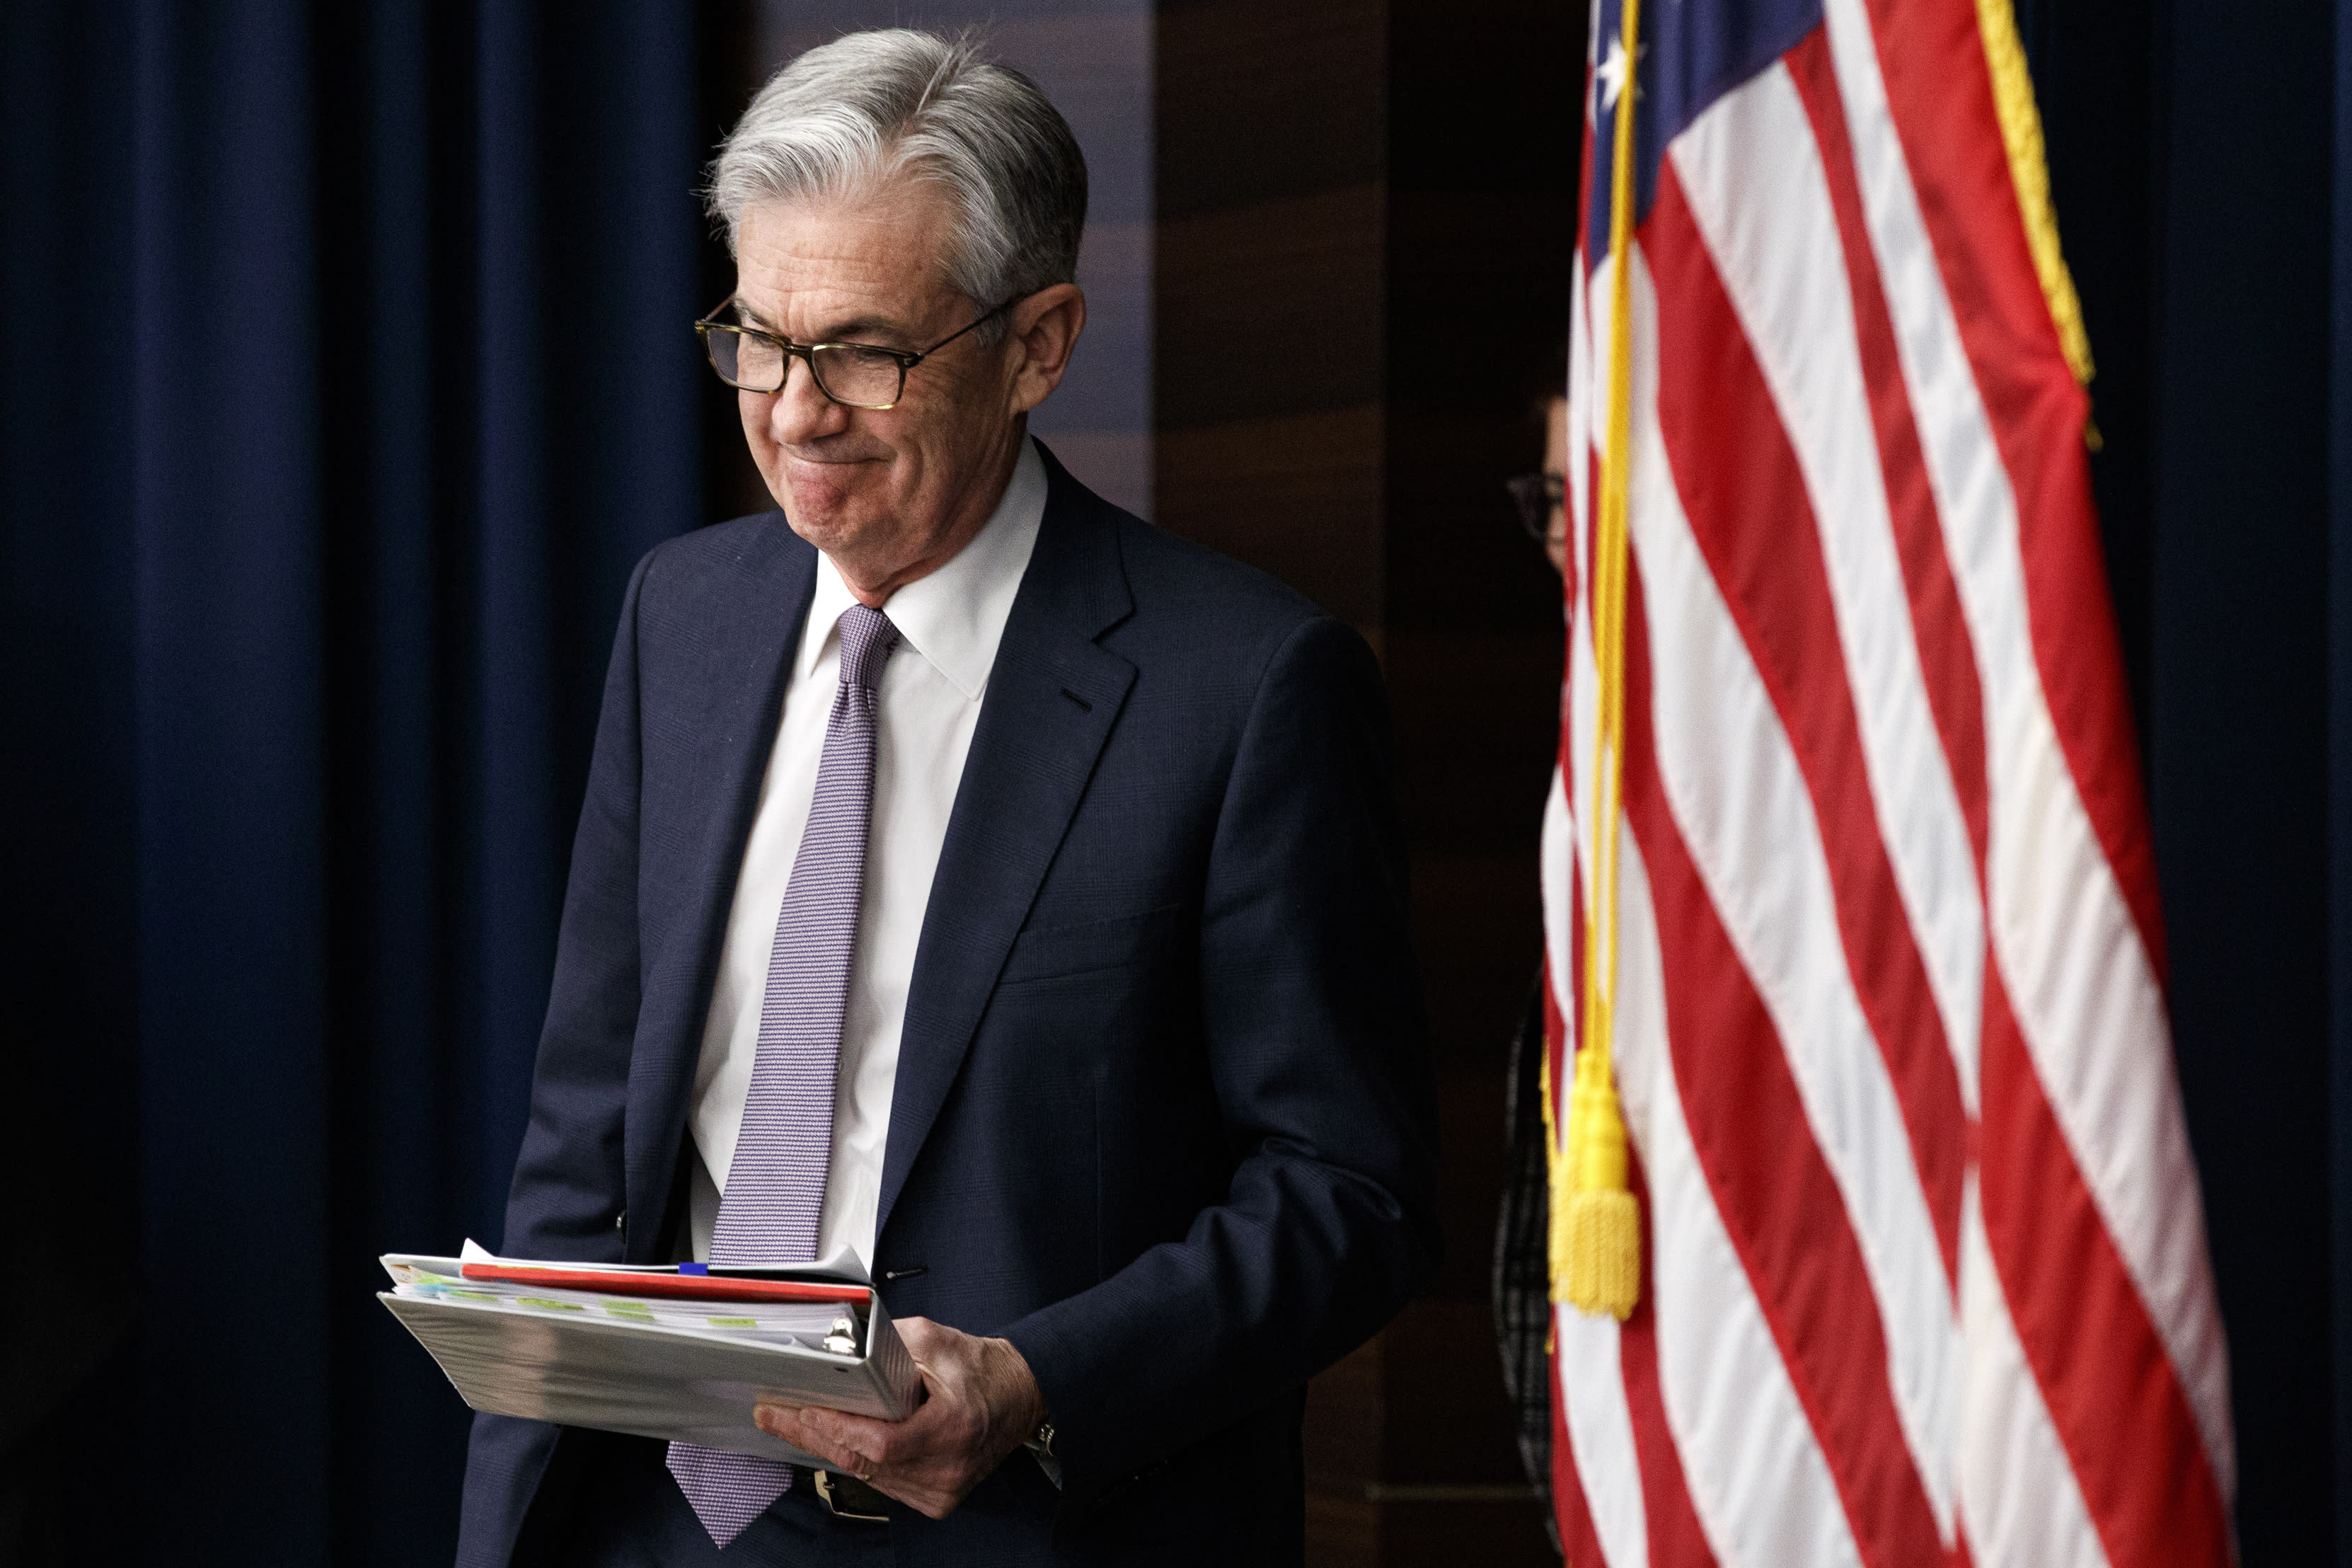 Fed may need new approach to boost inflation, Daly says